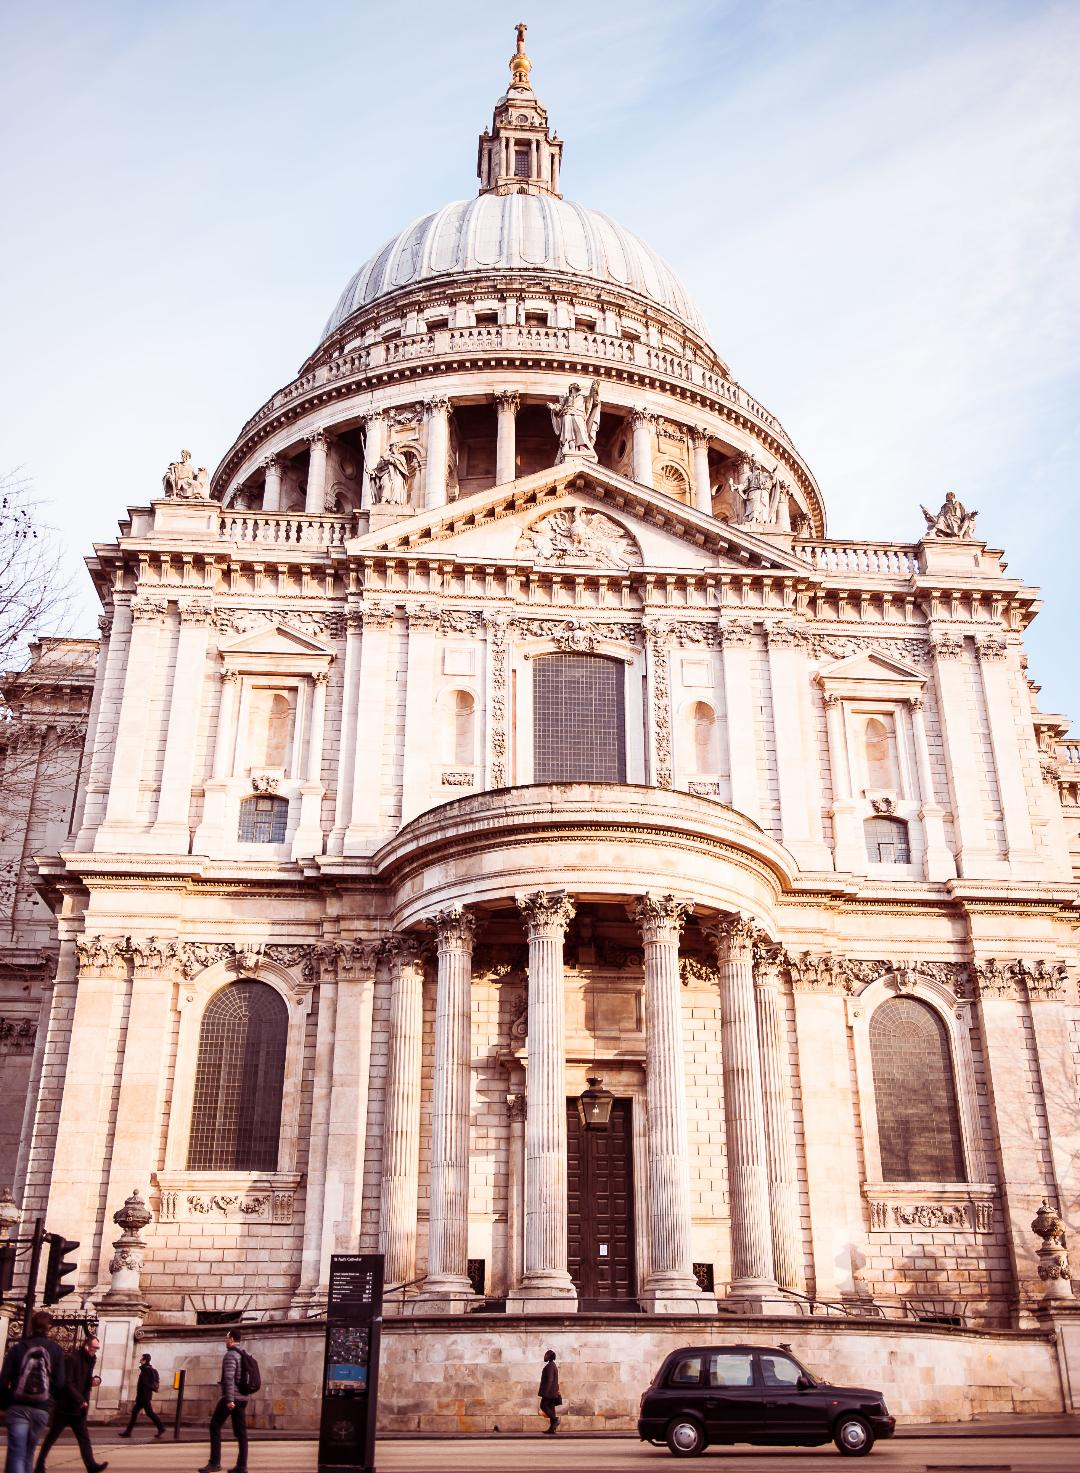 The outside of St Pauls Cathedral